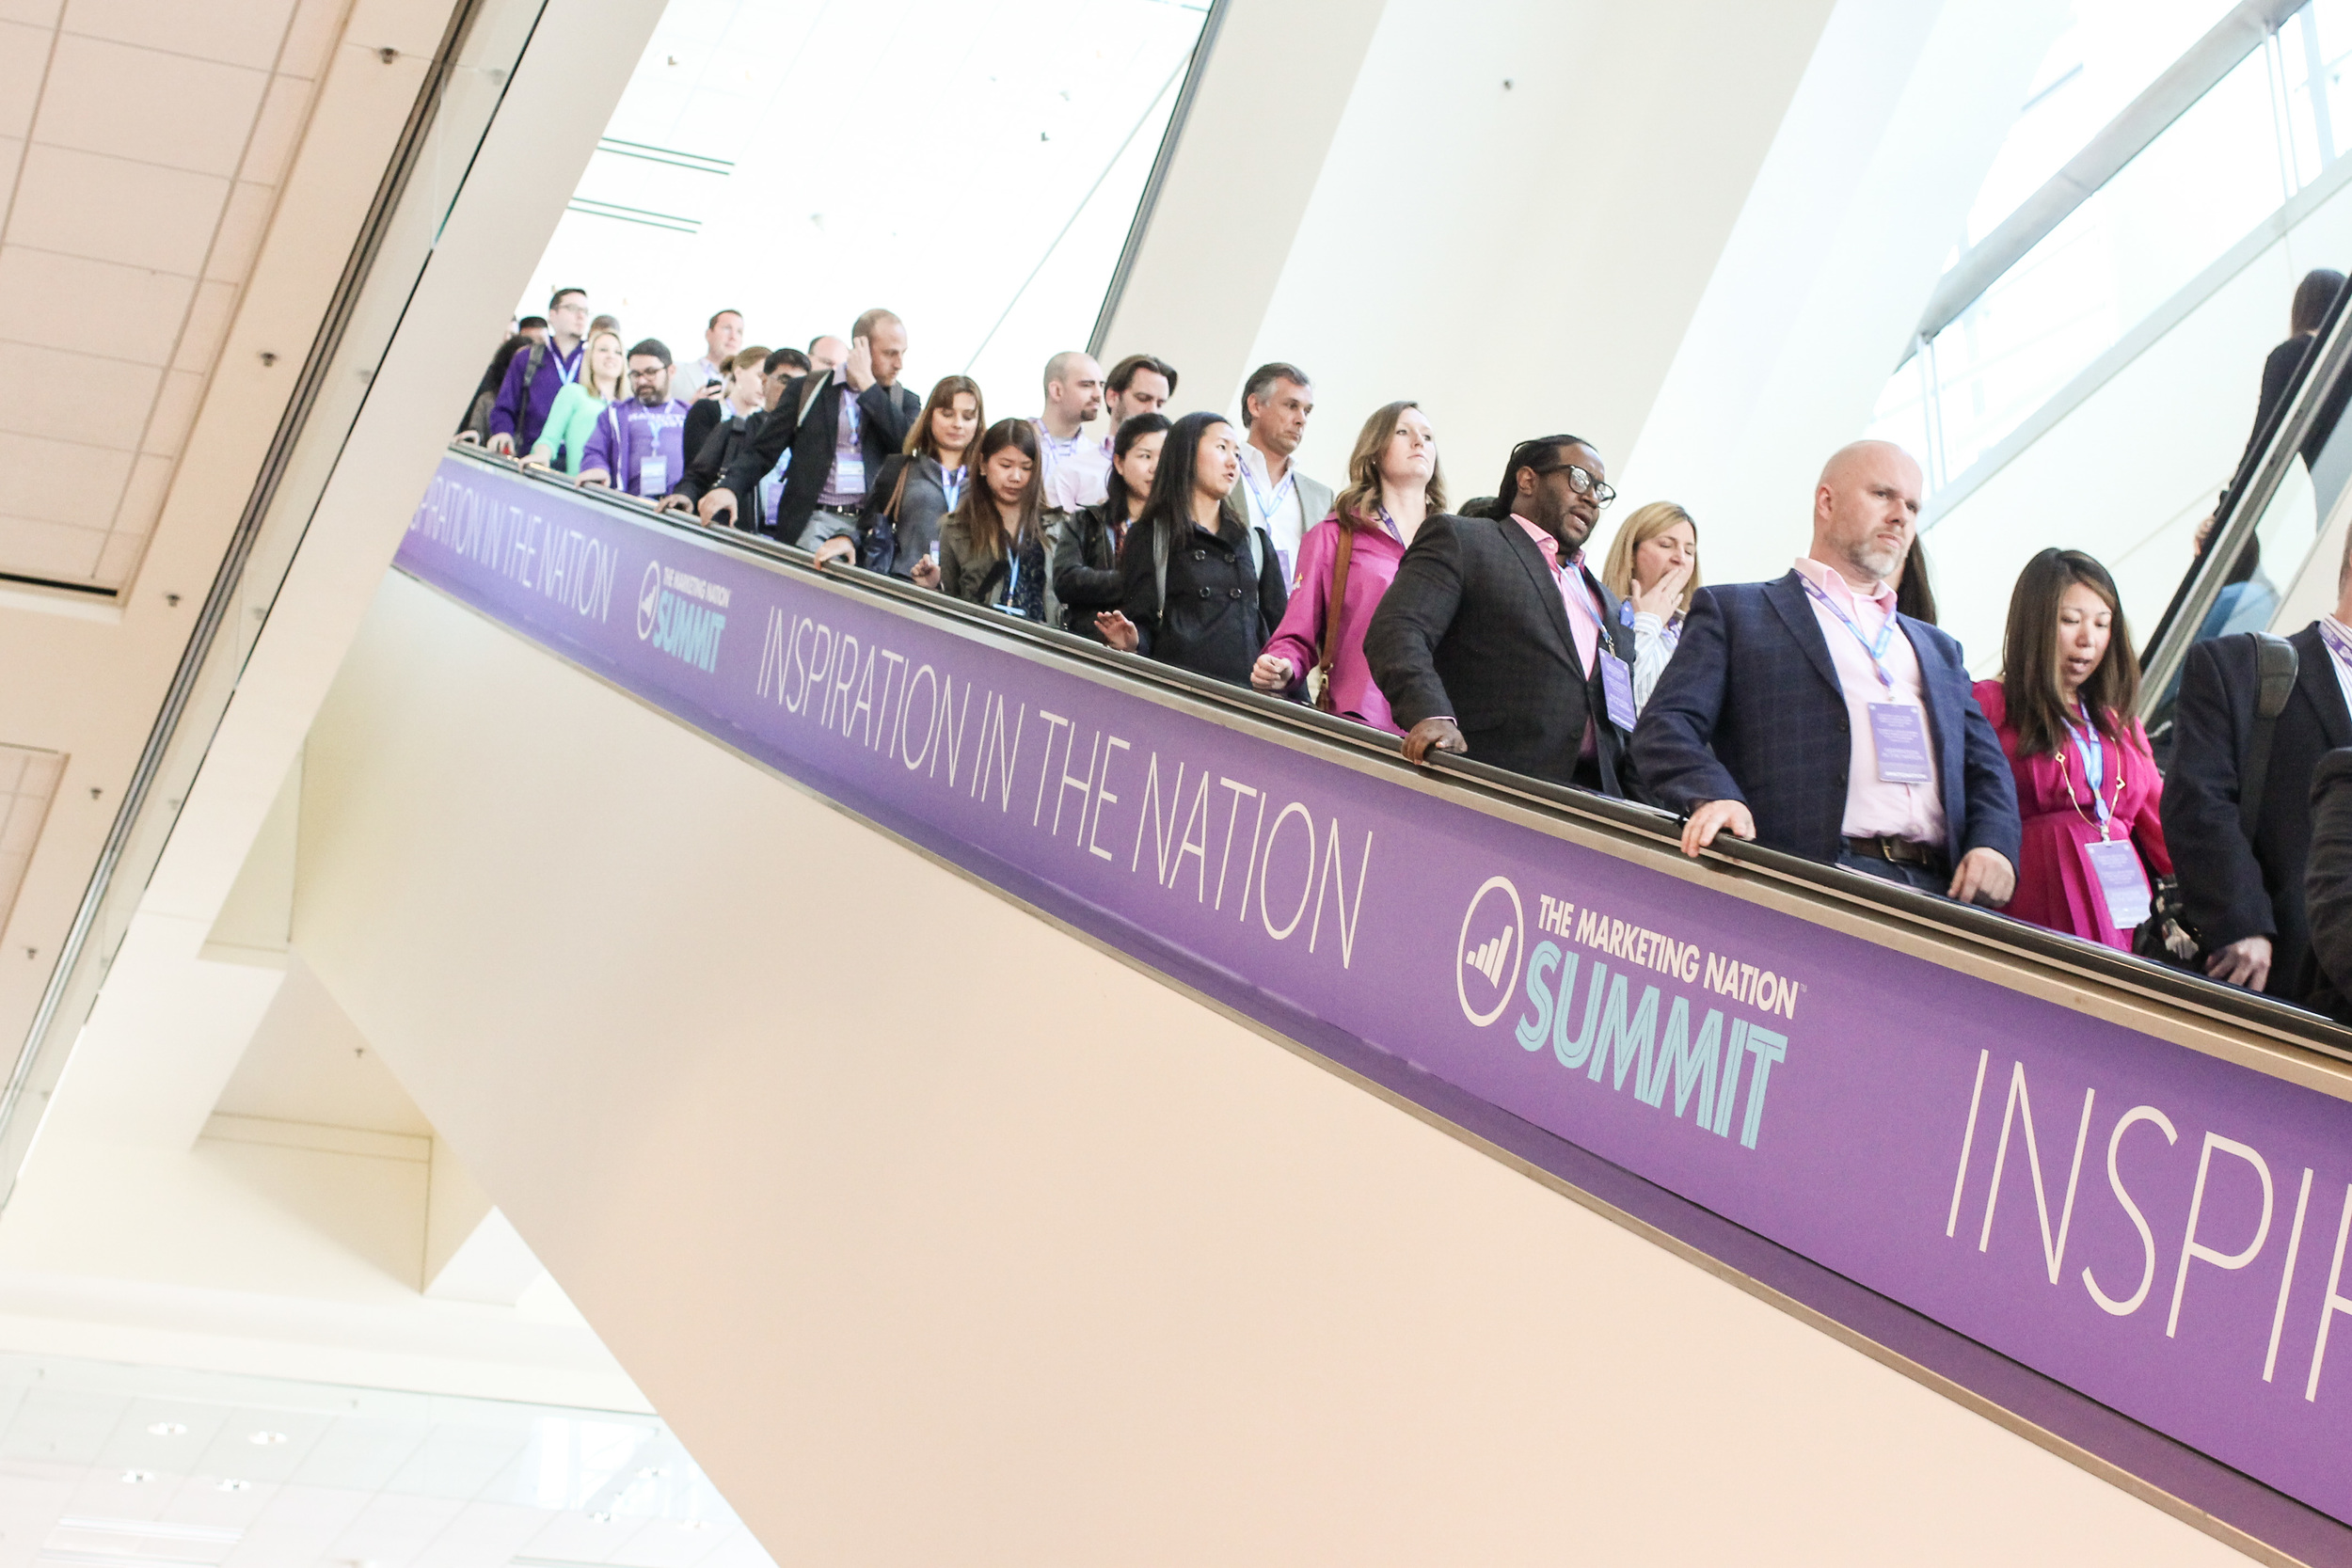 Attendees for the Marketing Nation Summit sponsored by #Marketo. #convention #MasconeCenter